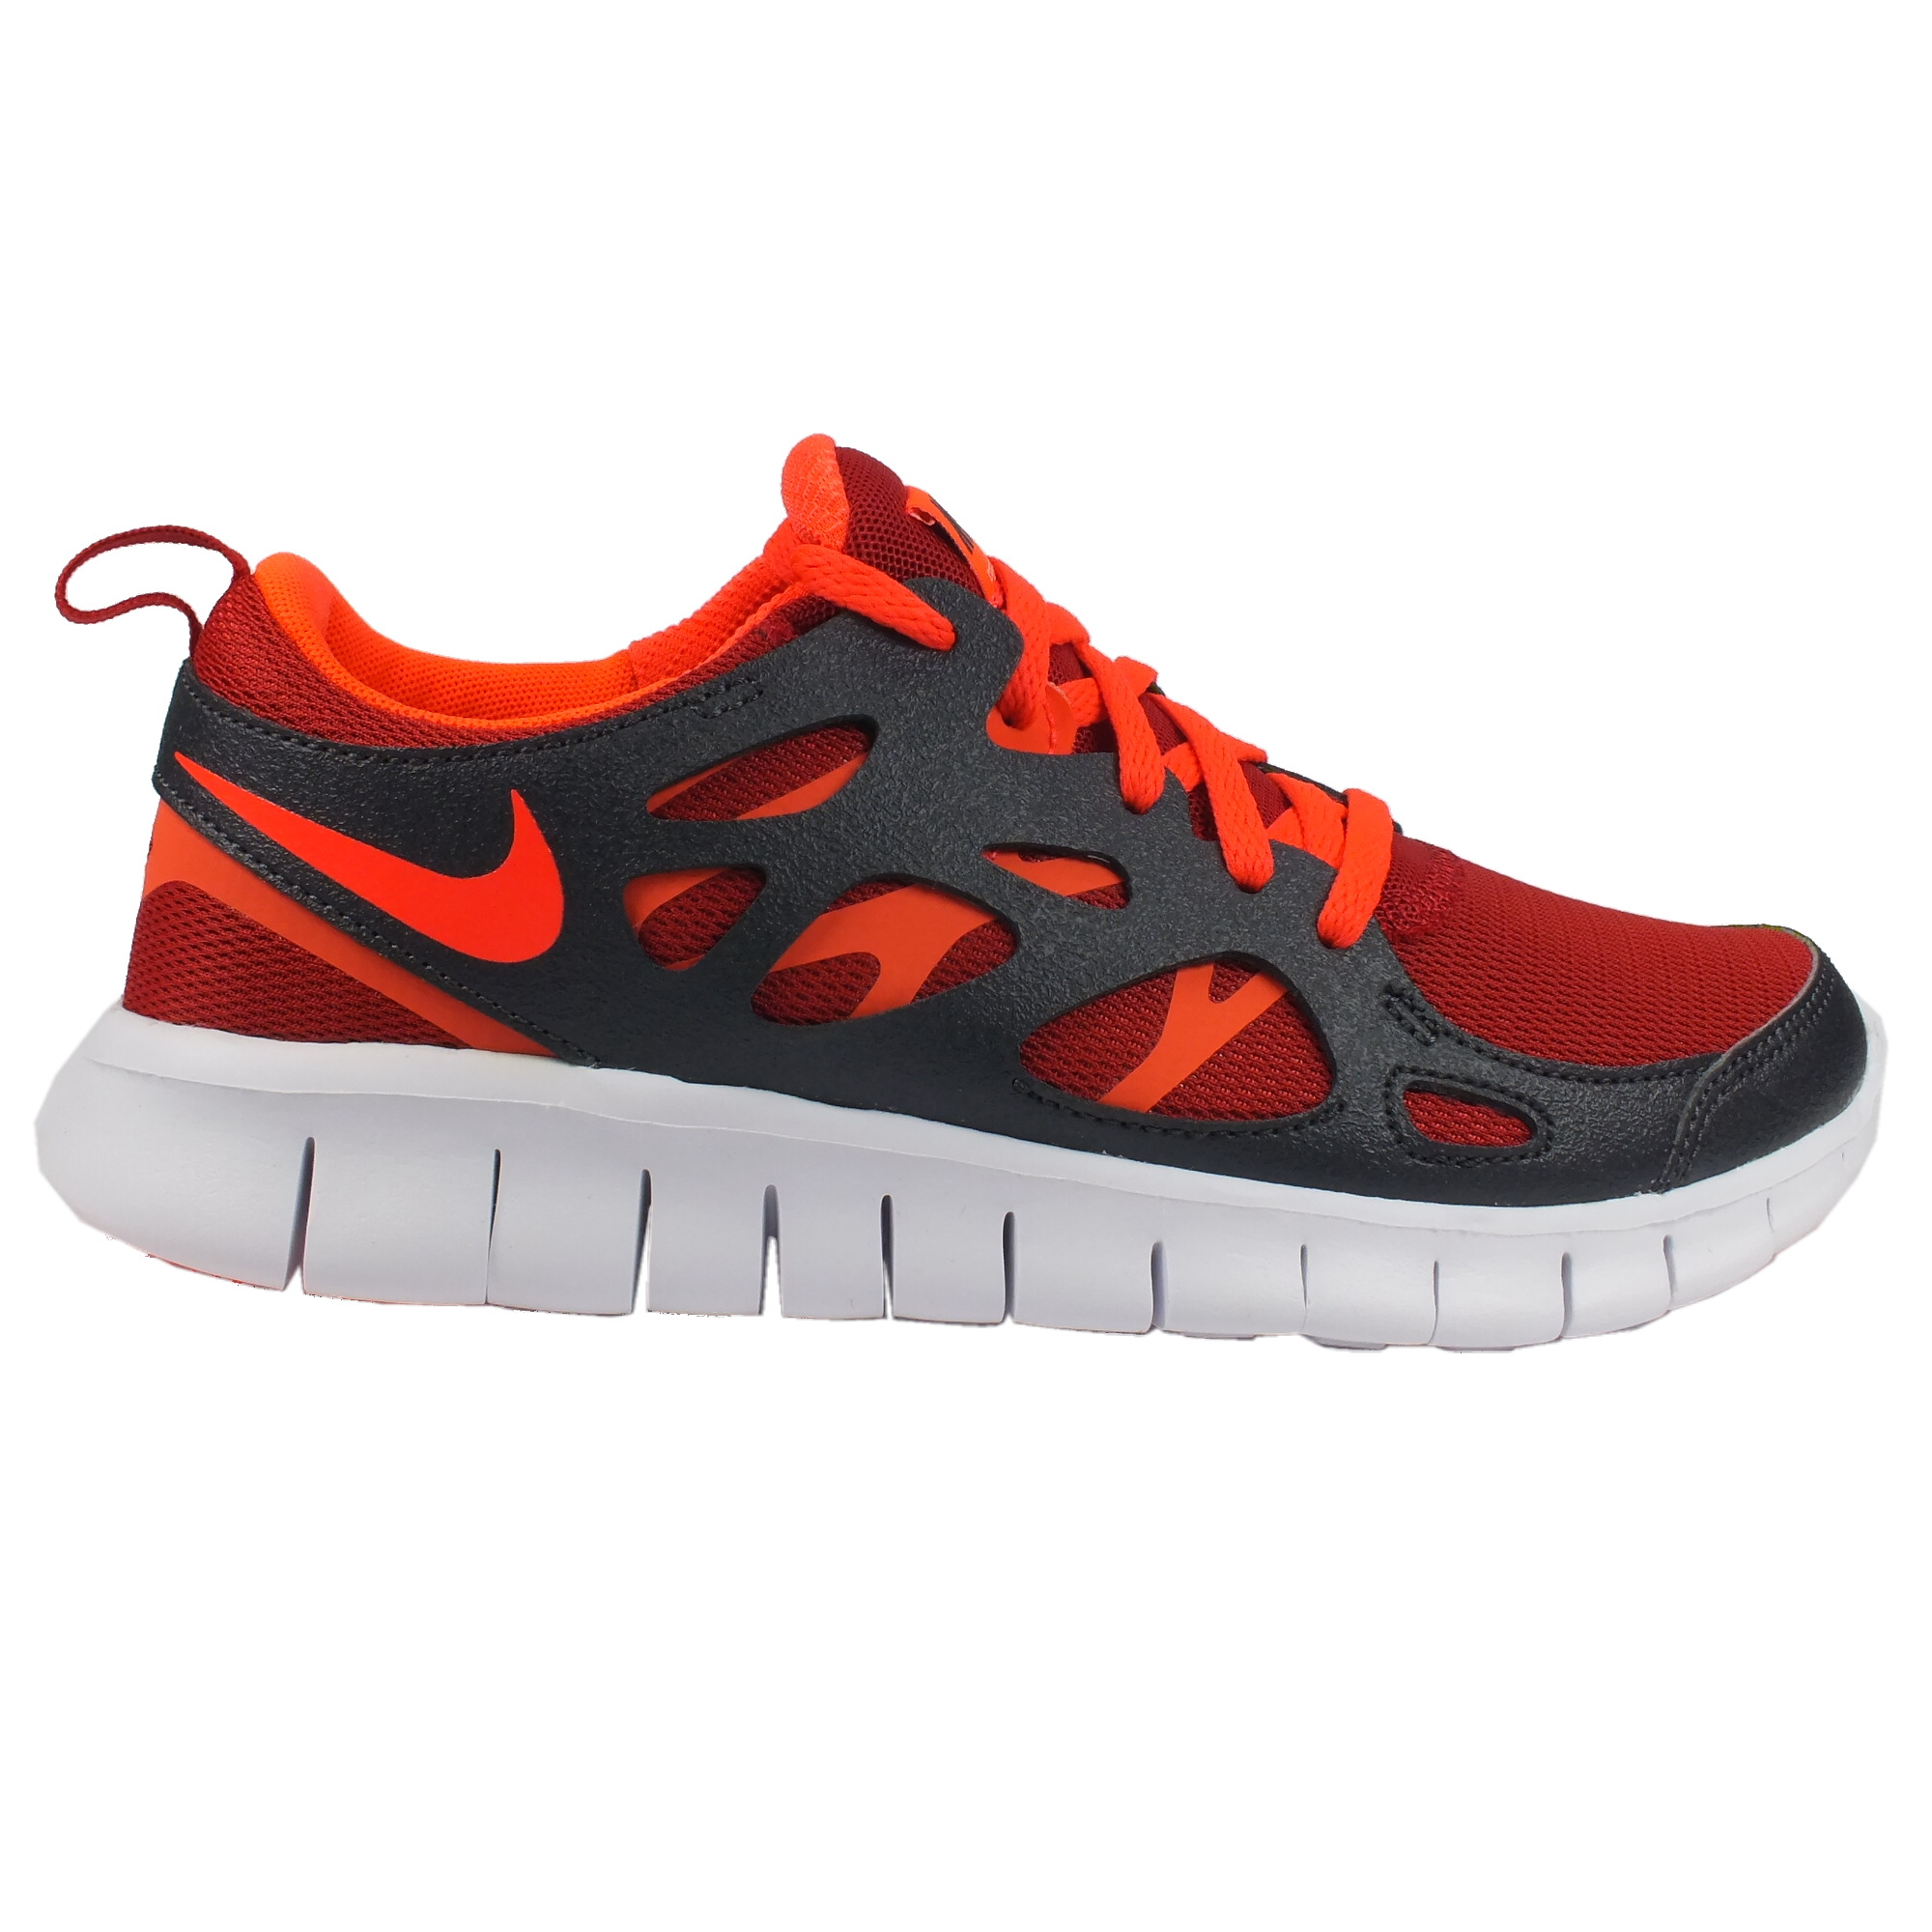 nike free run 2 gs schuhe laufschuhe sportschuhe jogging. Black Bedroom Furniture Sets. Home Design Ideas